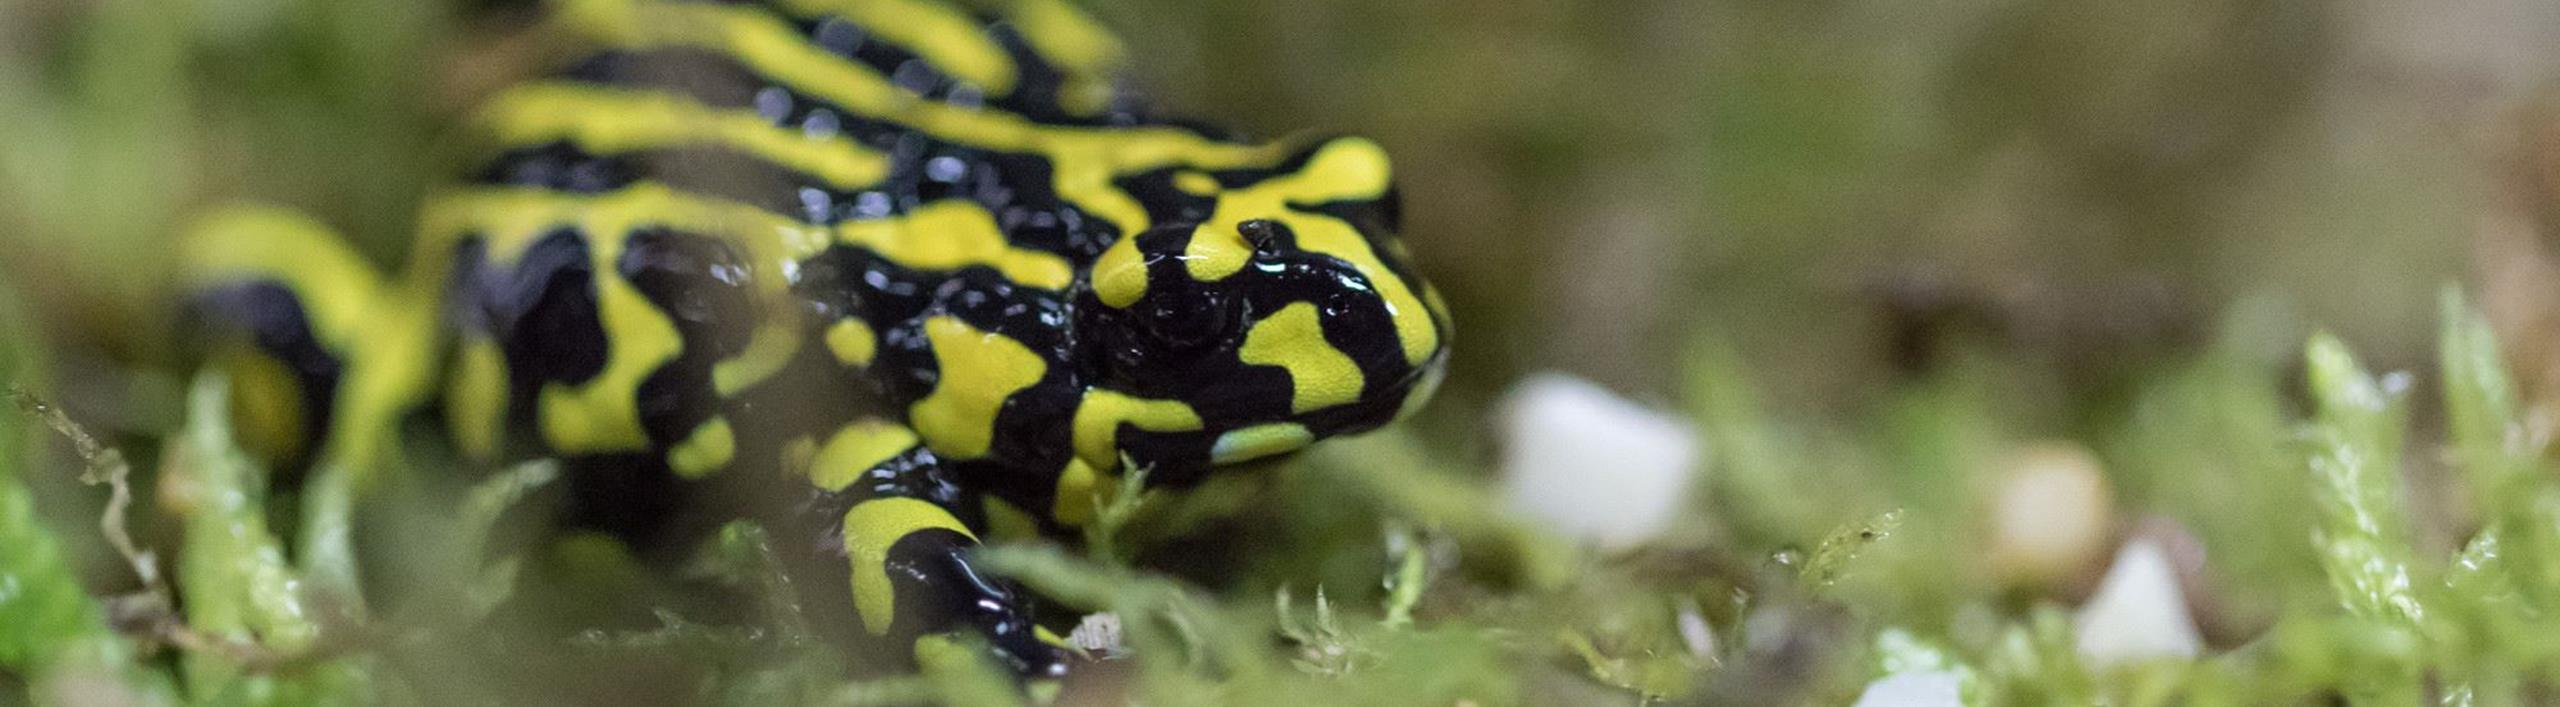 Southern Corroboree Frog standing on pale green moss. Frog is bright yellow and black striped.